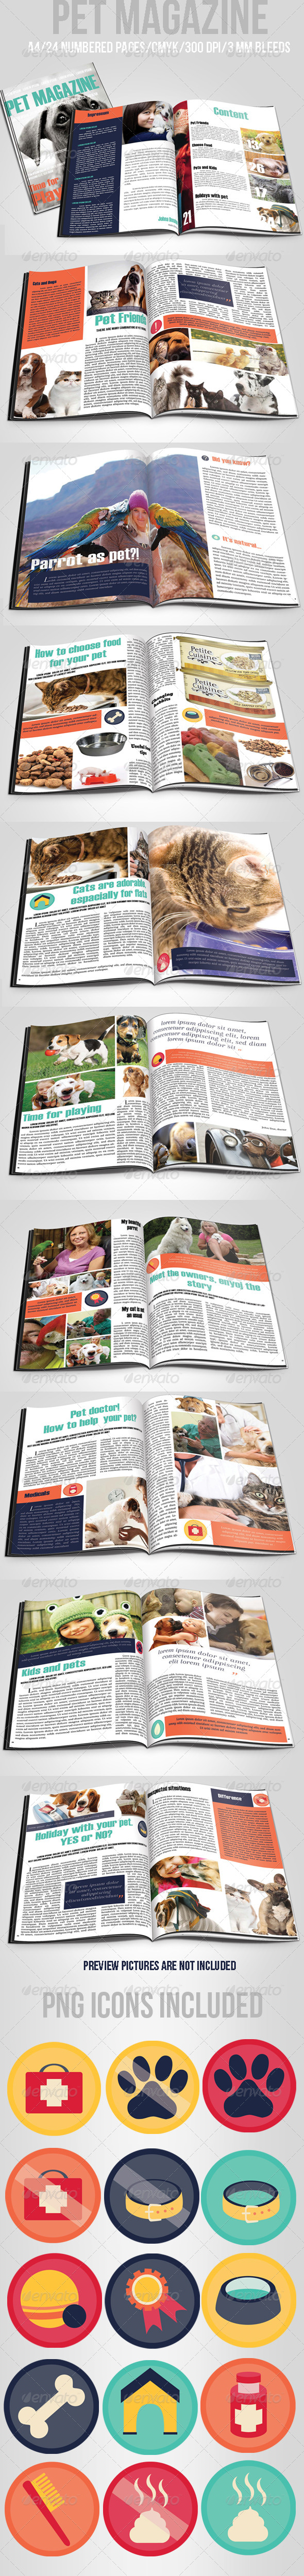 GraphicRiver Pet Magazine 5481110